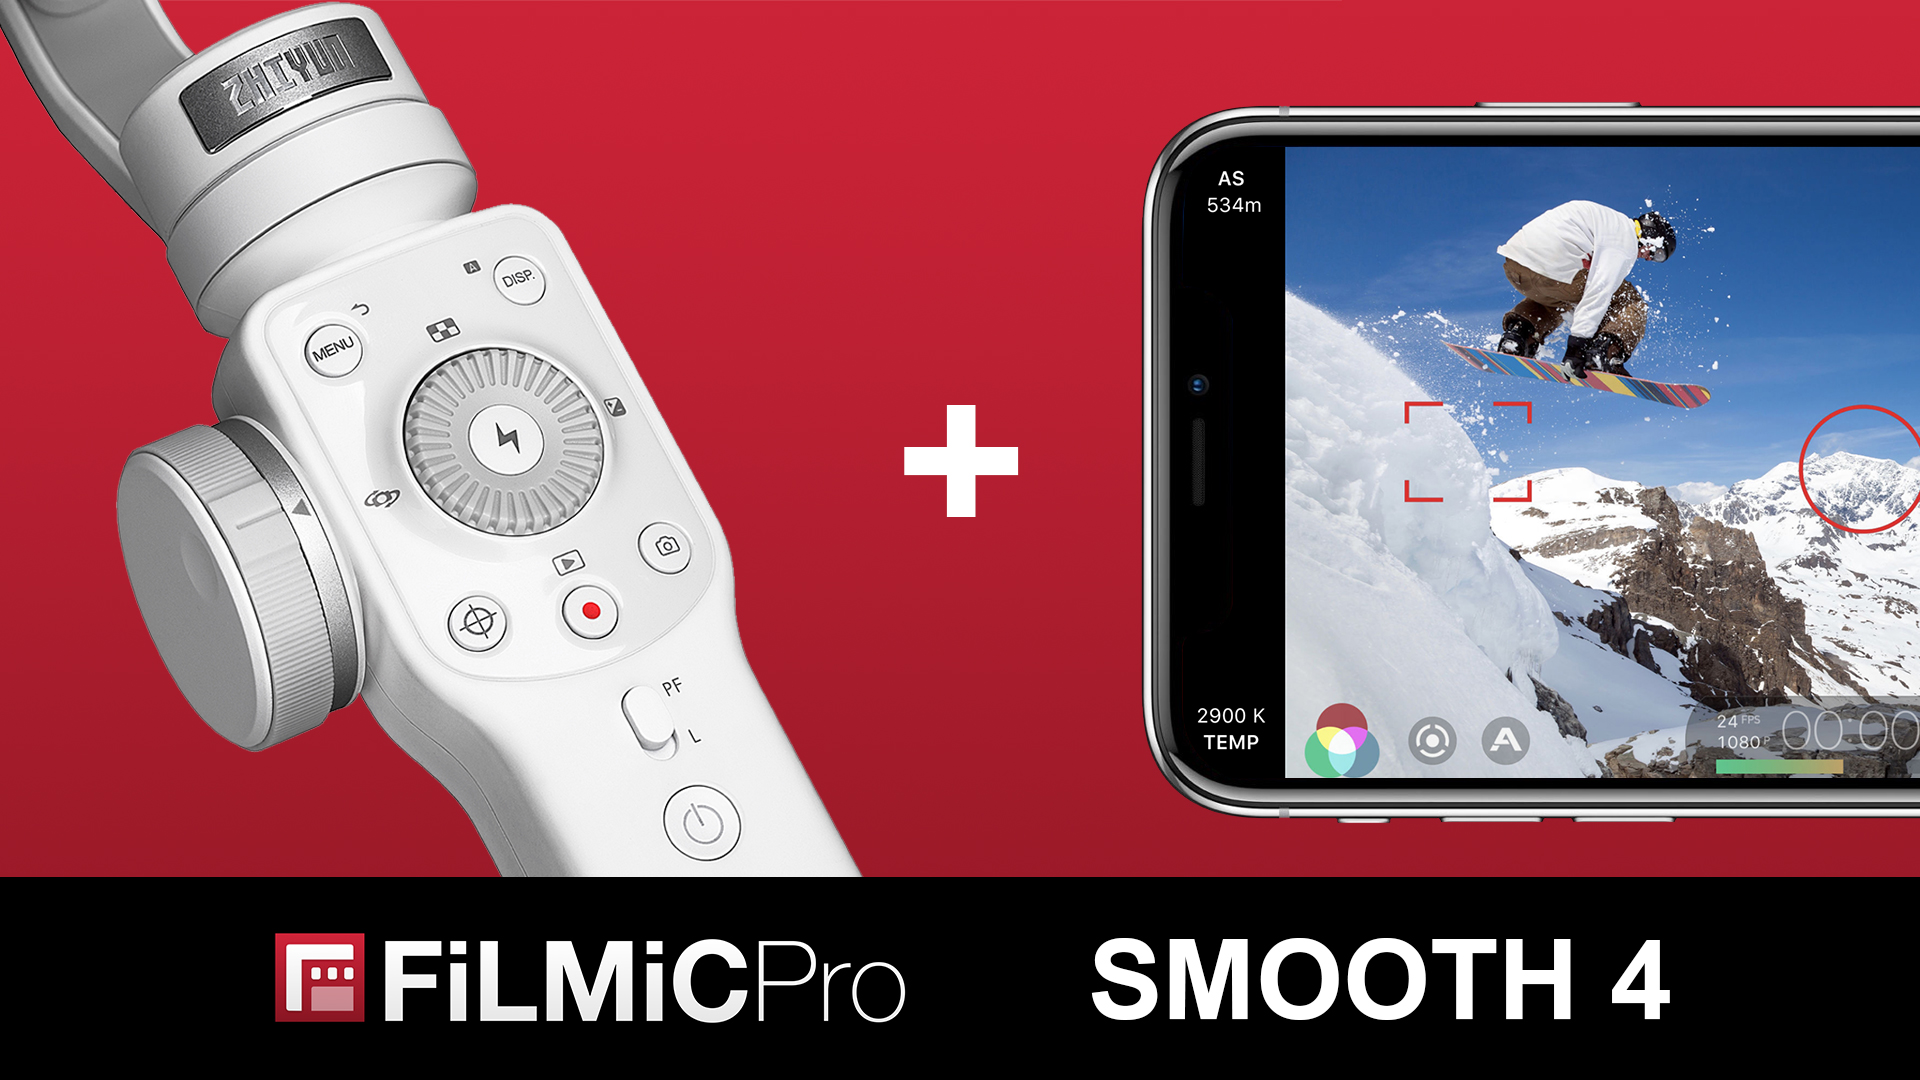 FiLMiC Pro and Zhiyun Smooth 4 - A Perfect Match for Mobile Filmmakers